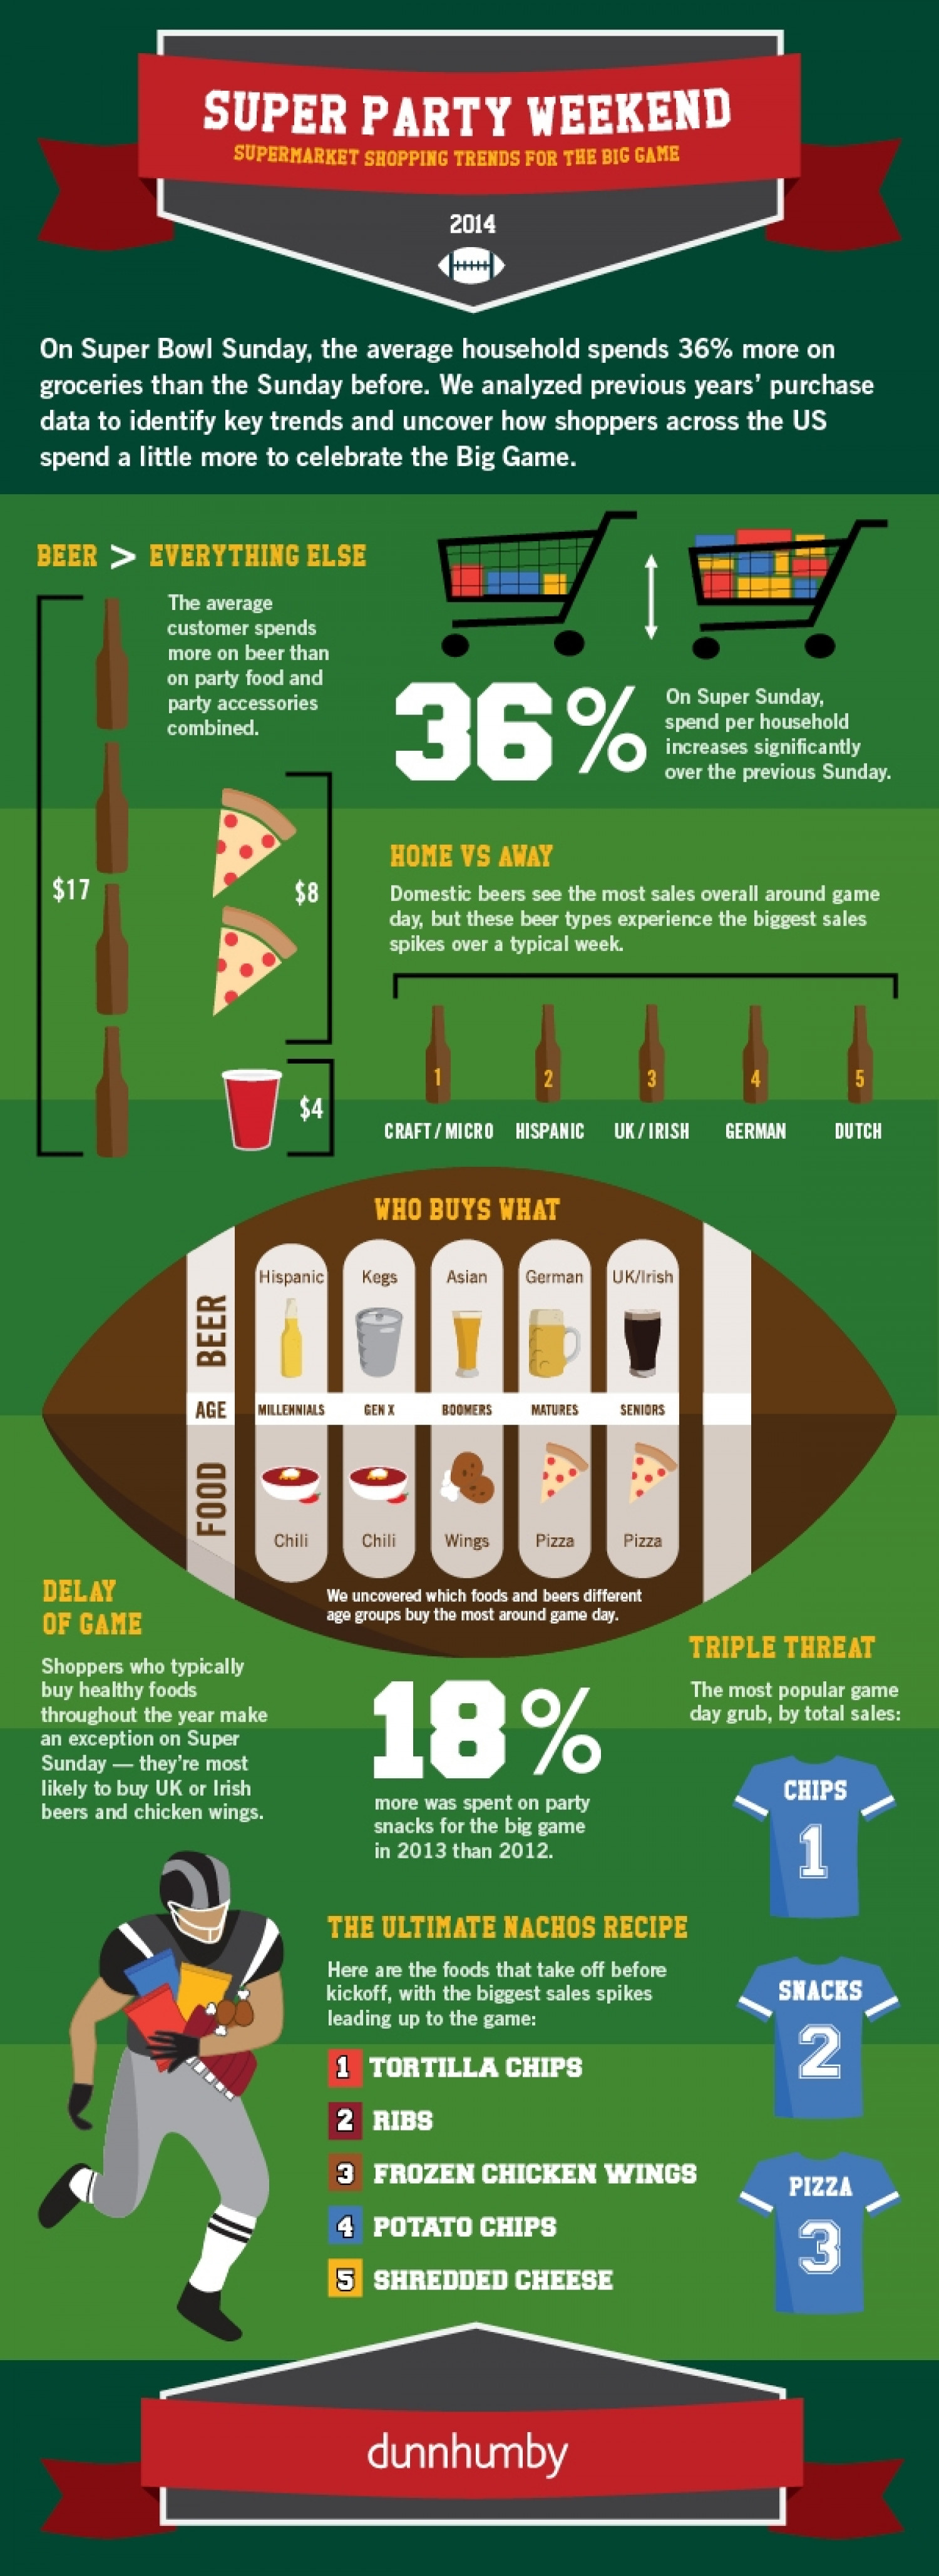 Super Party Weekend Infographic